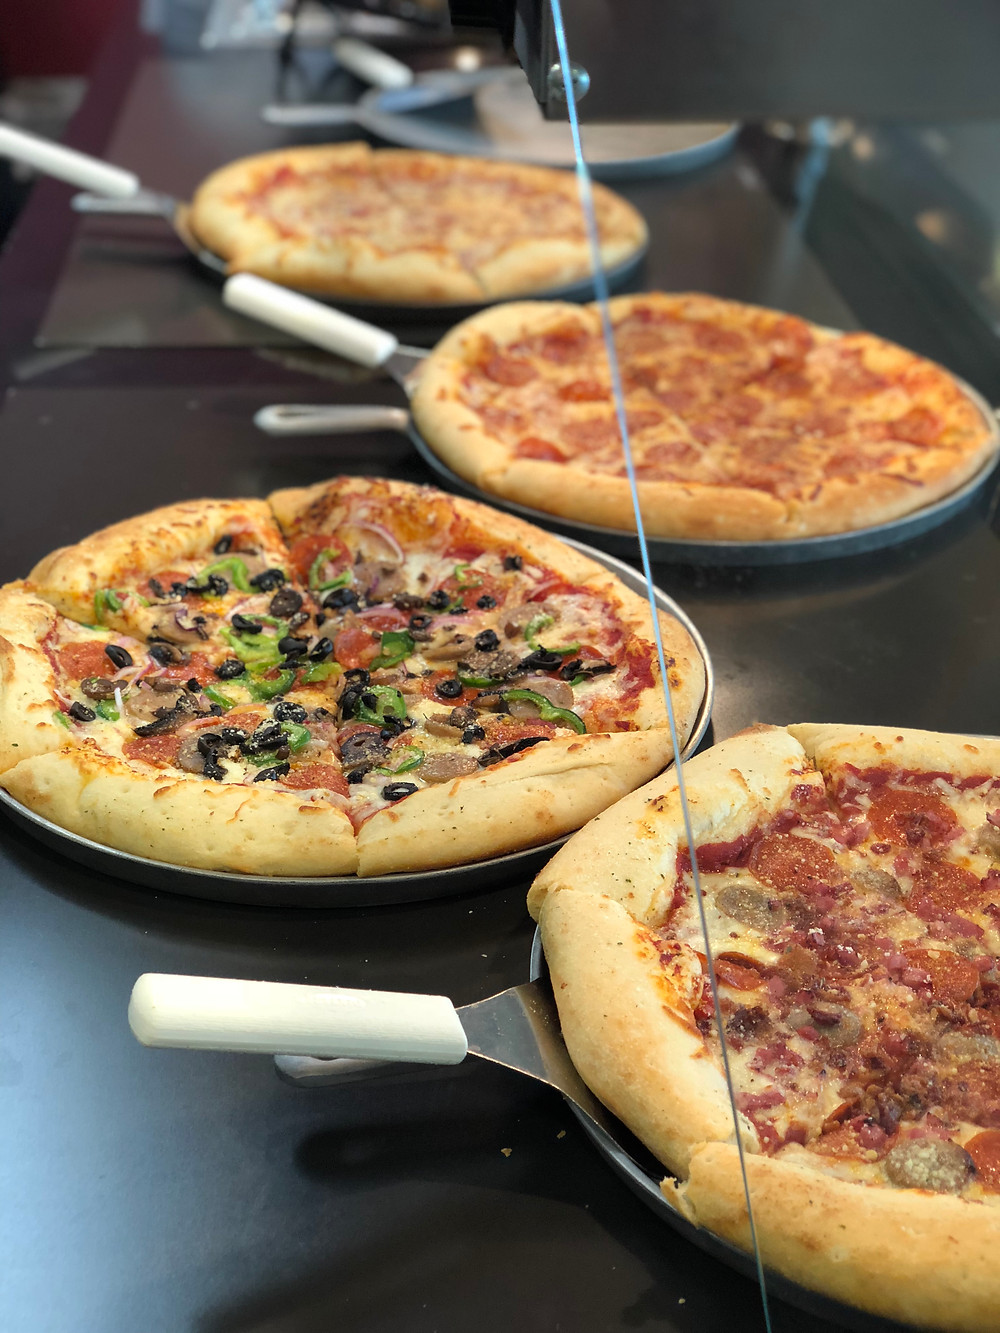 Pizzas from Slice Pizzeria.